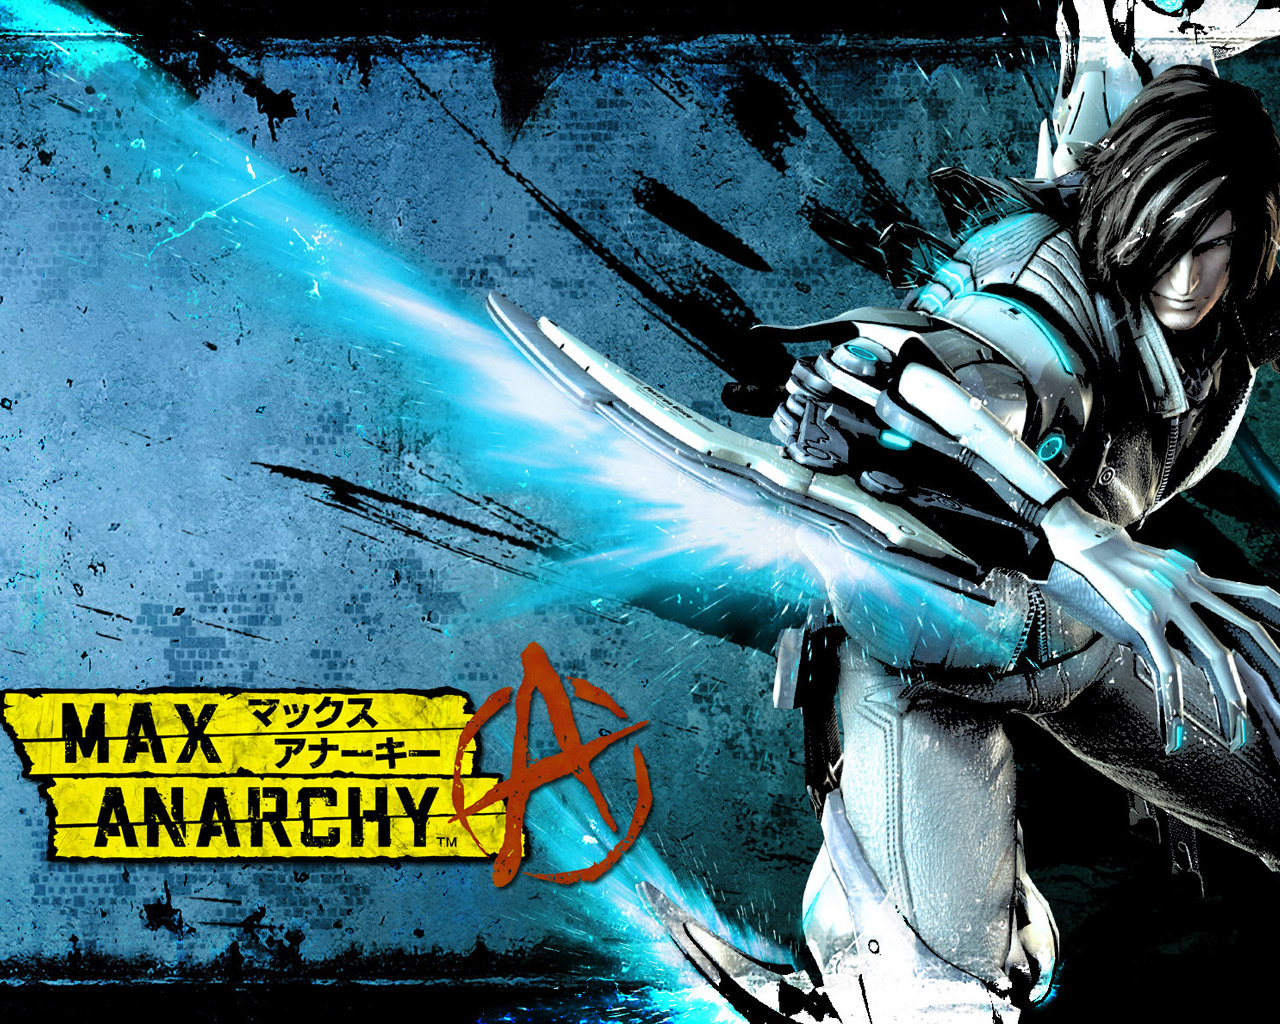 Free Anarchy Reigns Wallpaper in 1280x1024